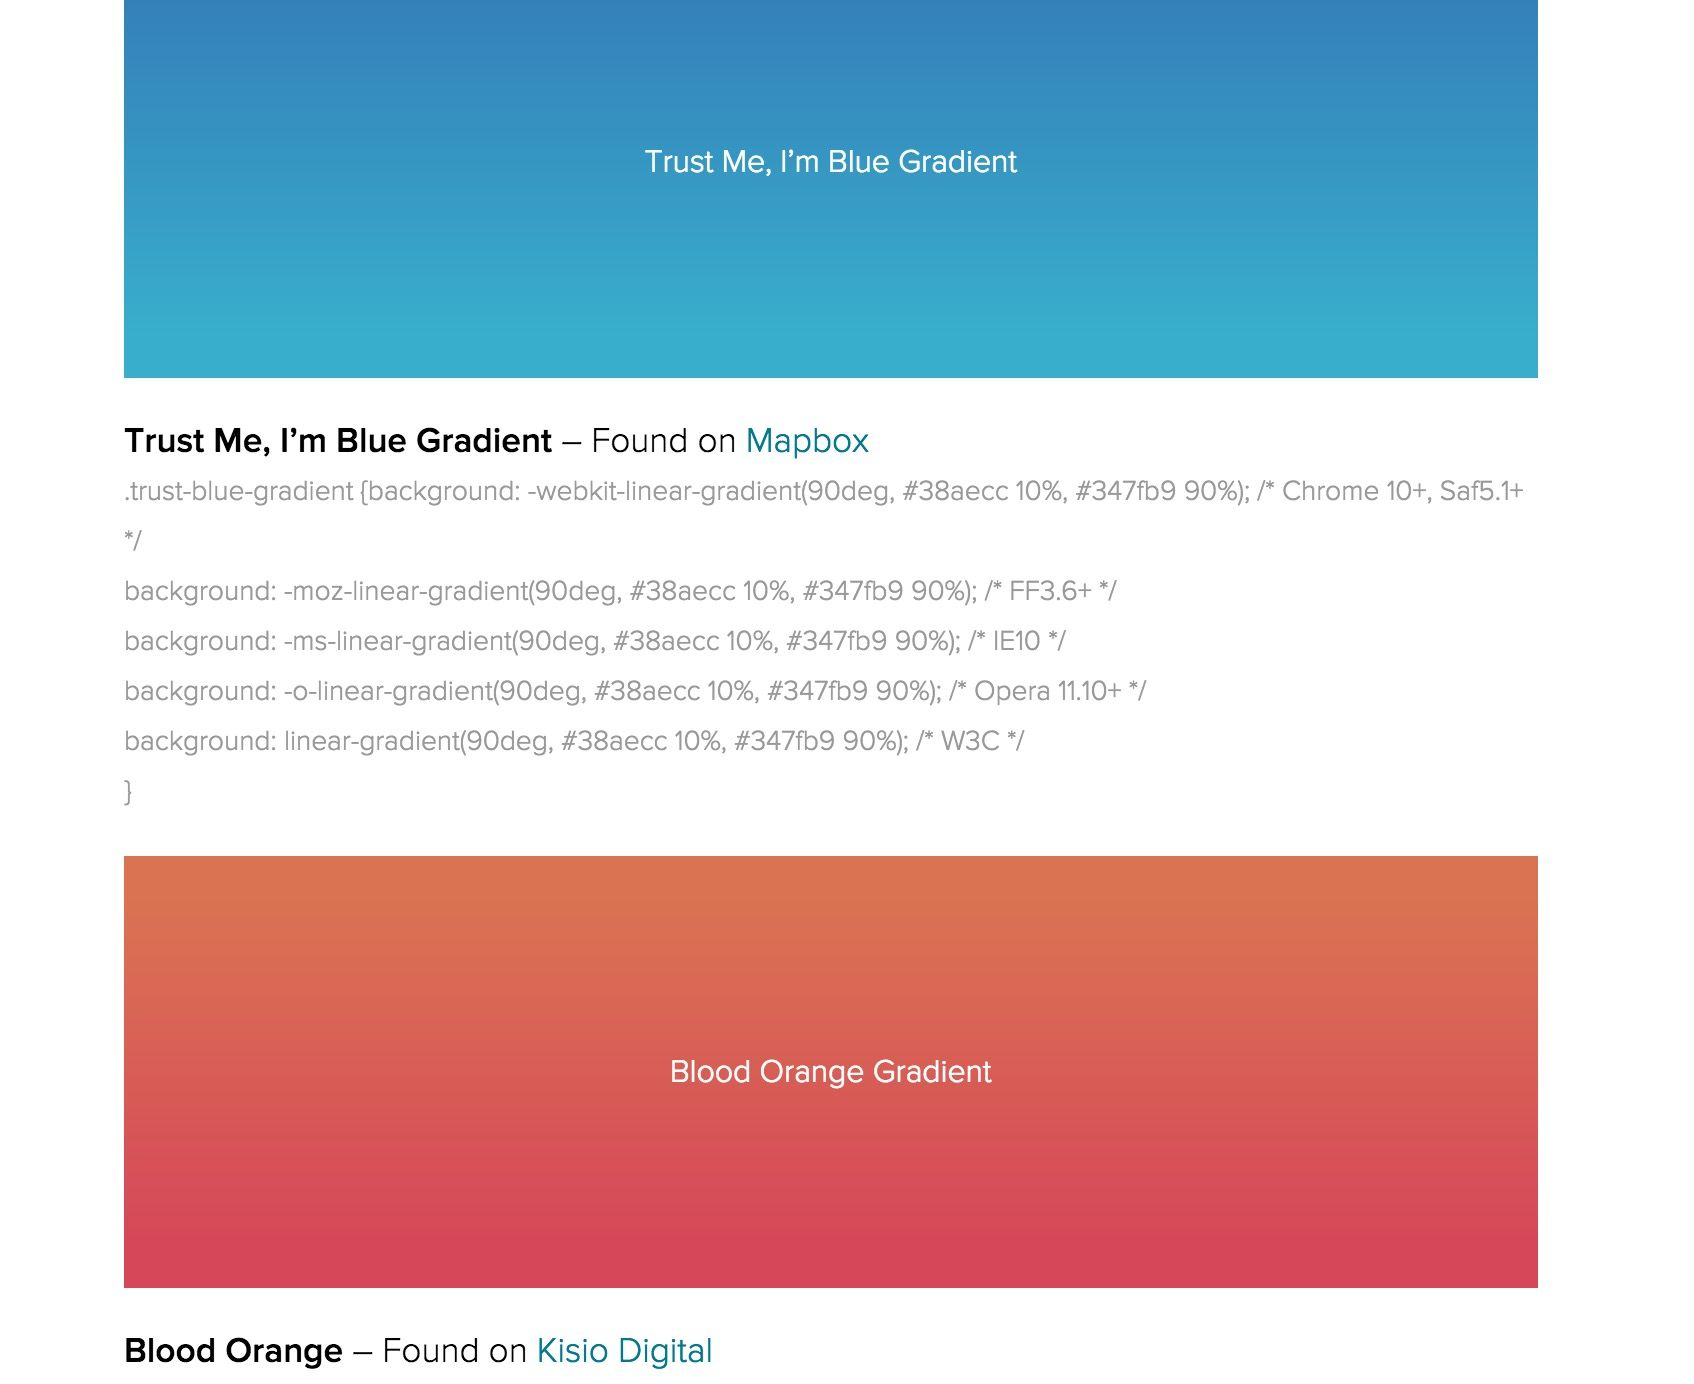 Background image linear gradient - Share The Value Share The Value Sour Tropical Gradient Sour Tropical Gradient Css Sour